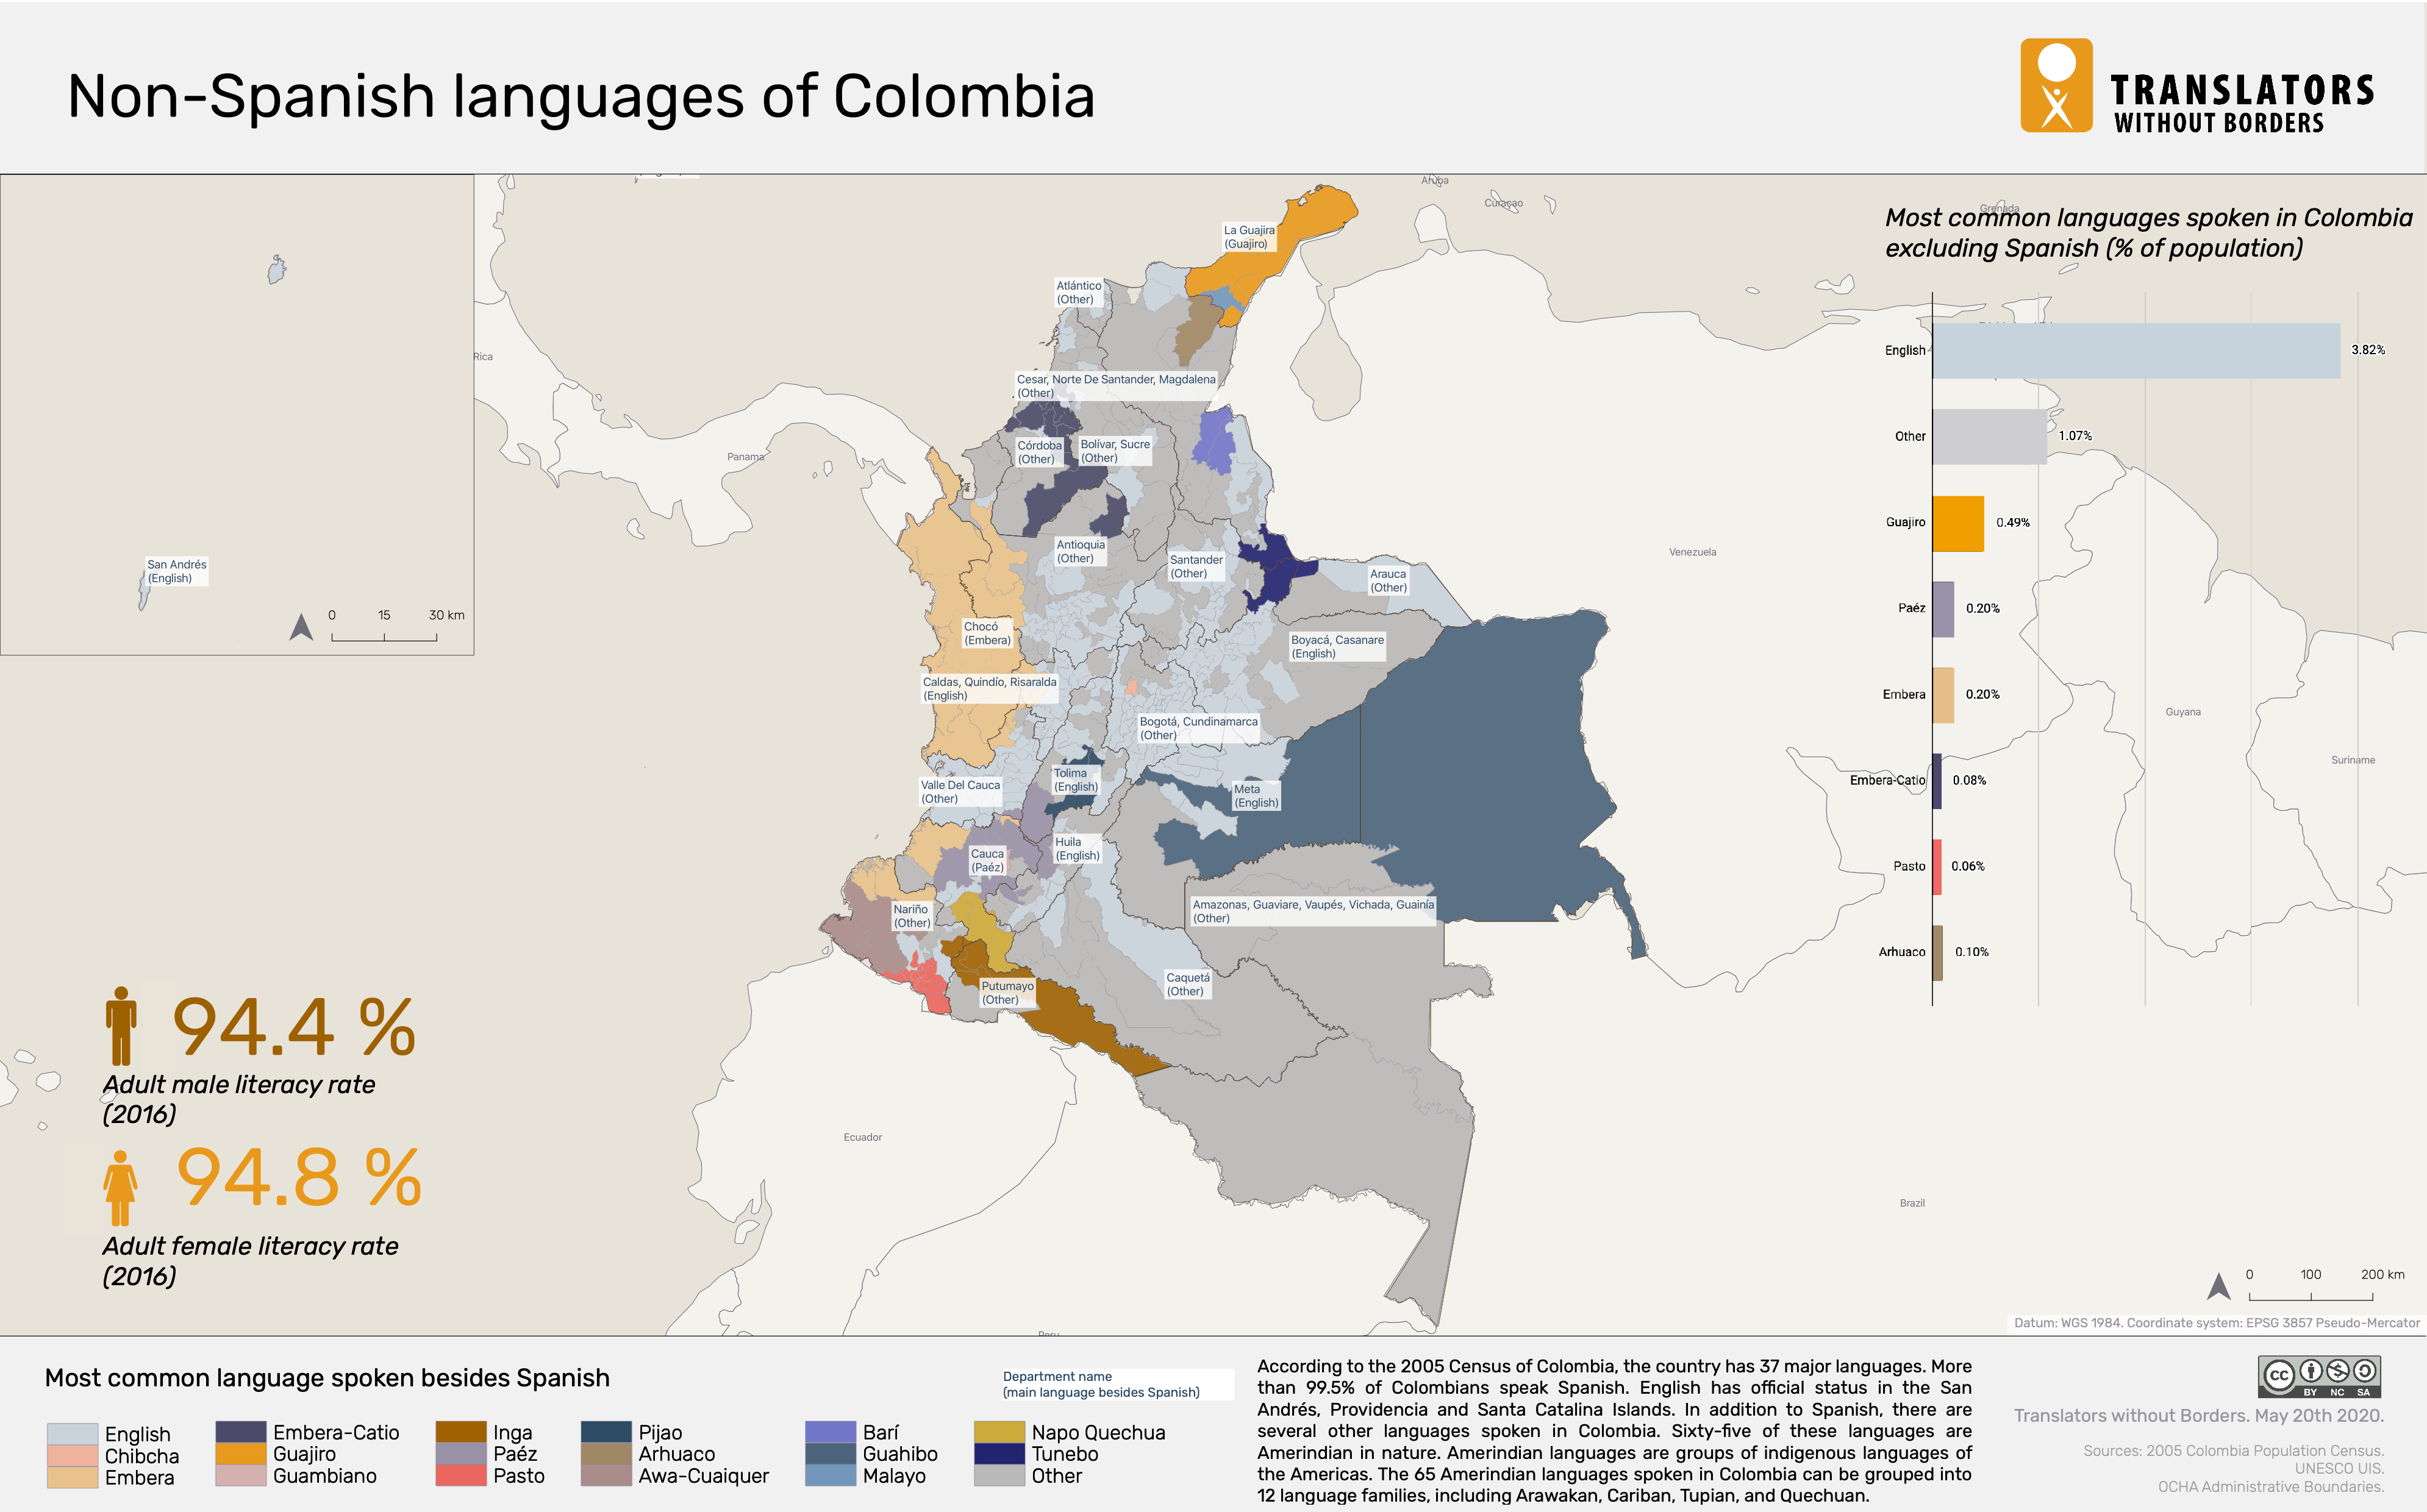 Language Data For Colombia Translators Without Borders